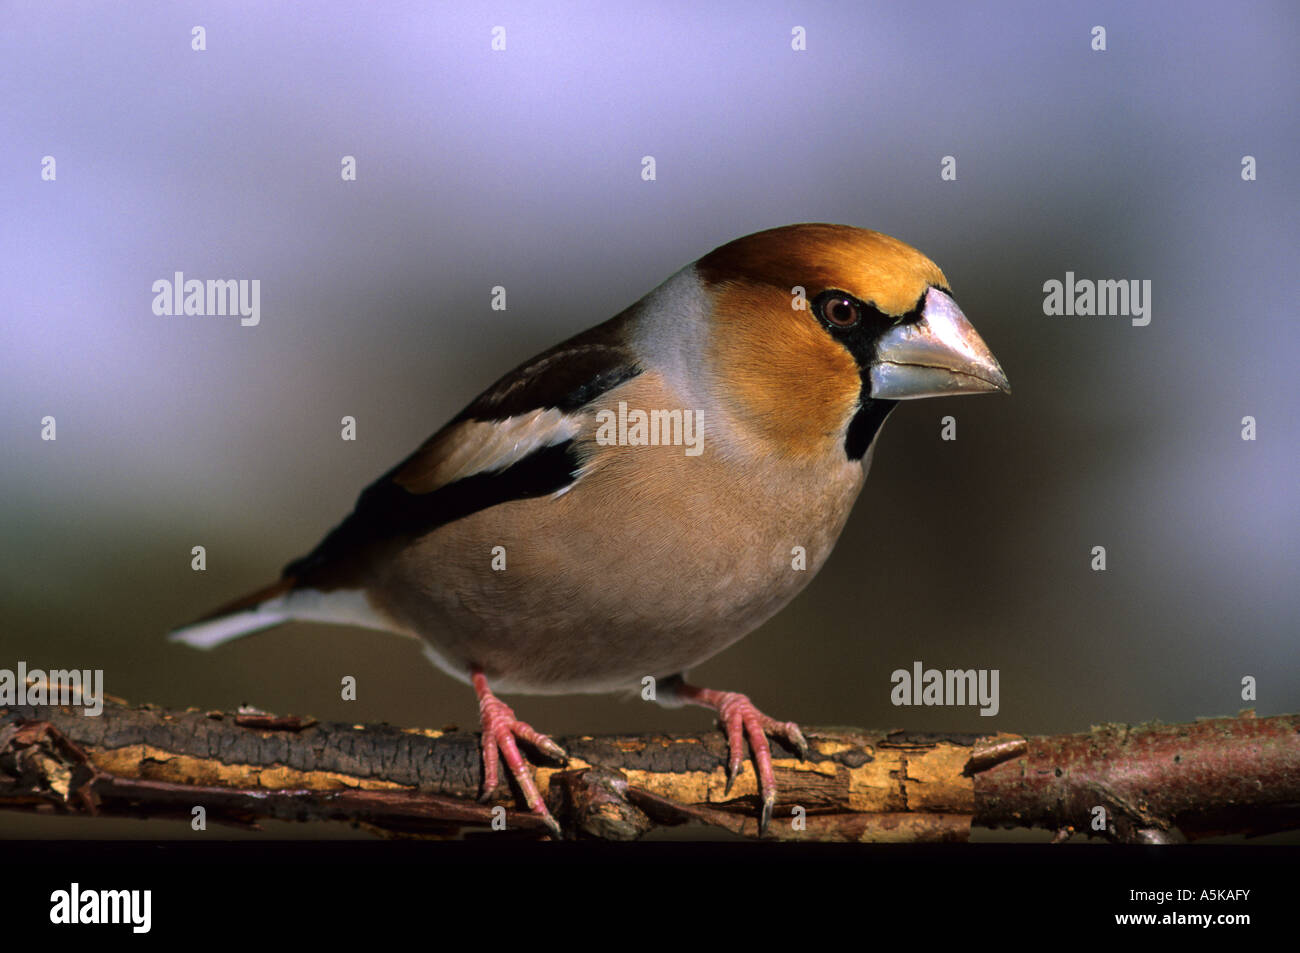 Hawfinch (Coccothraustes coccotraustes), Finches - Stock Image